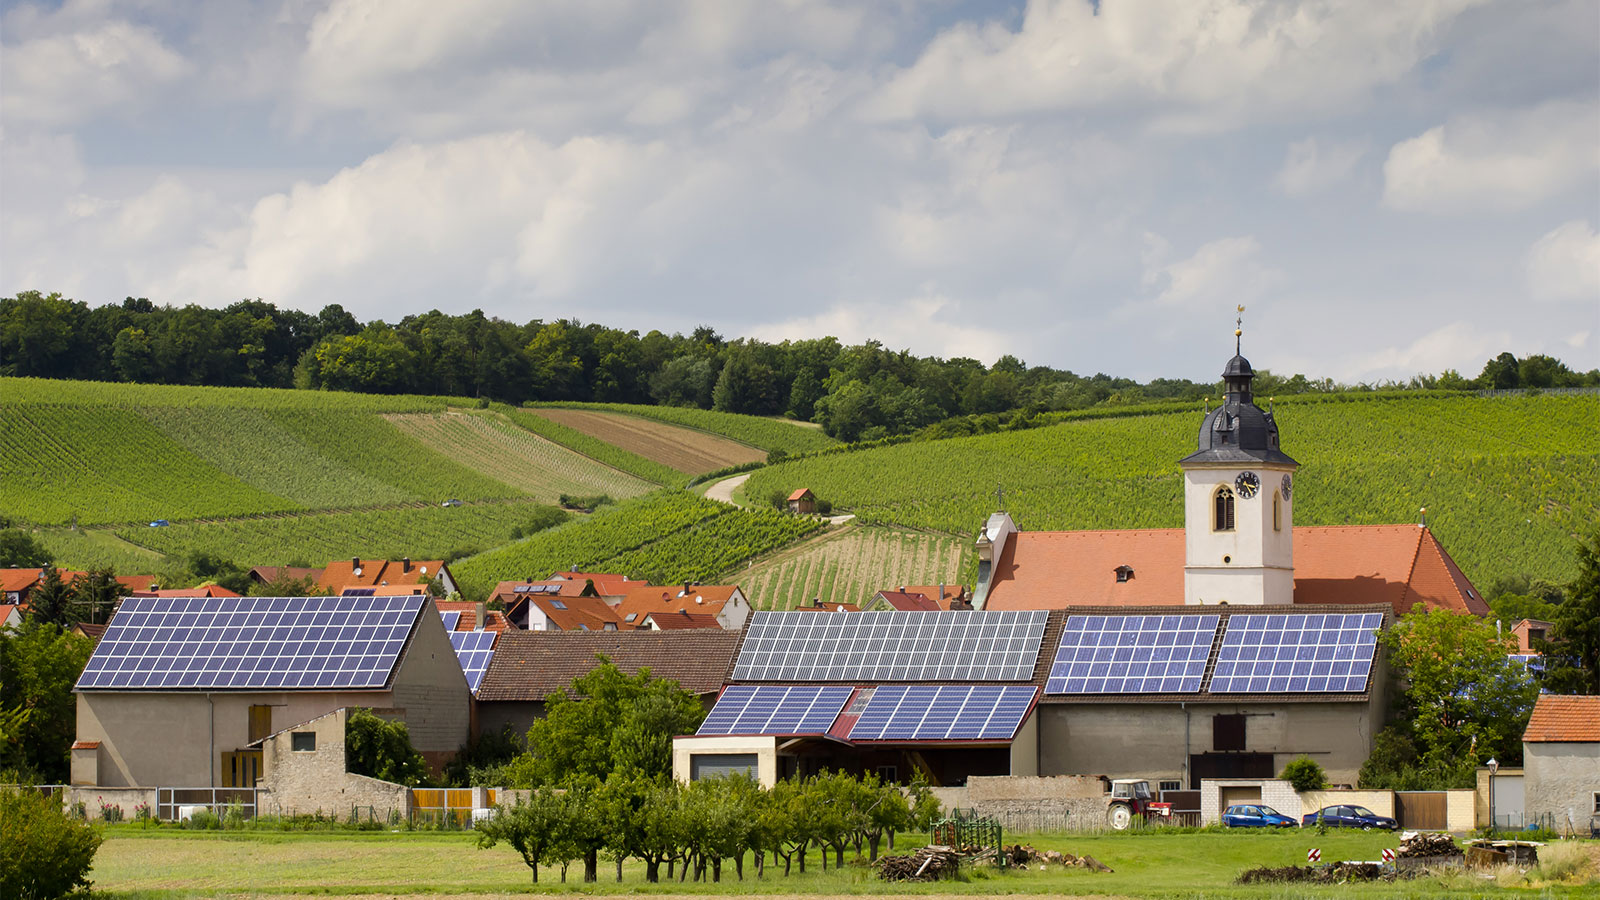 Solar panels installed on roofs in quaint village